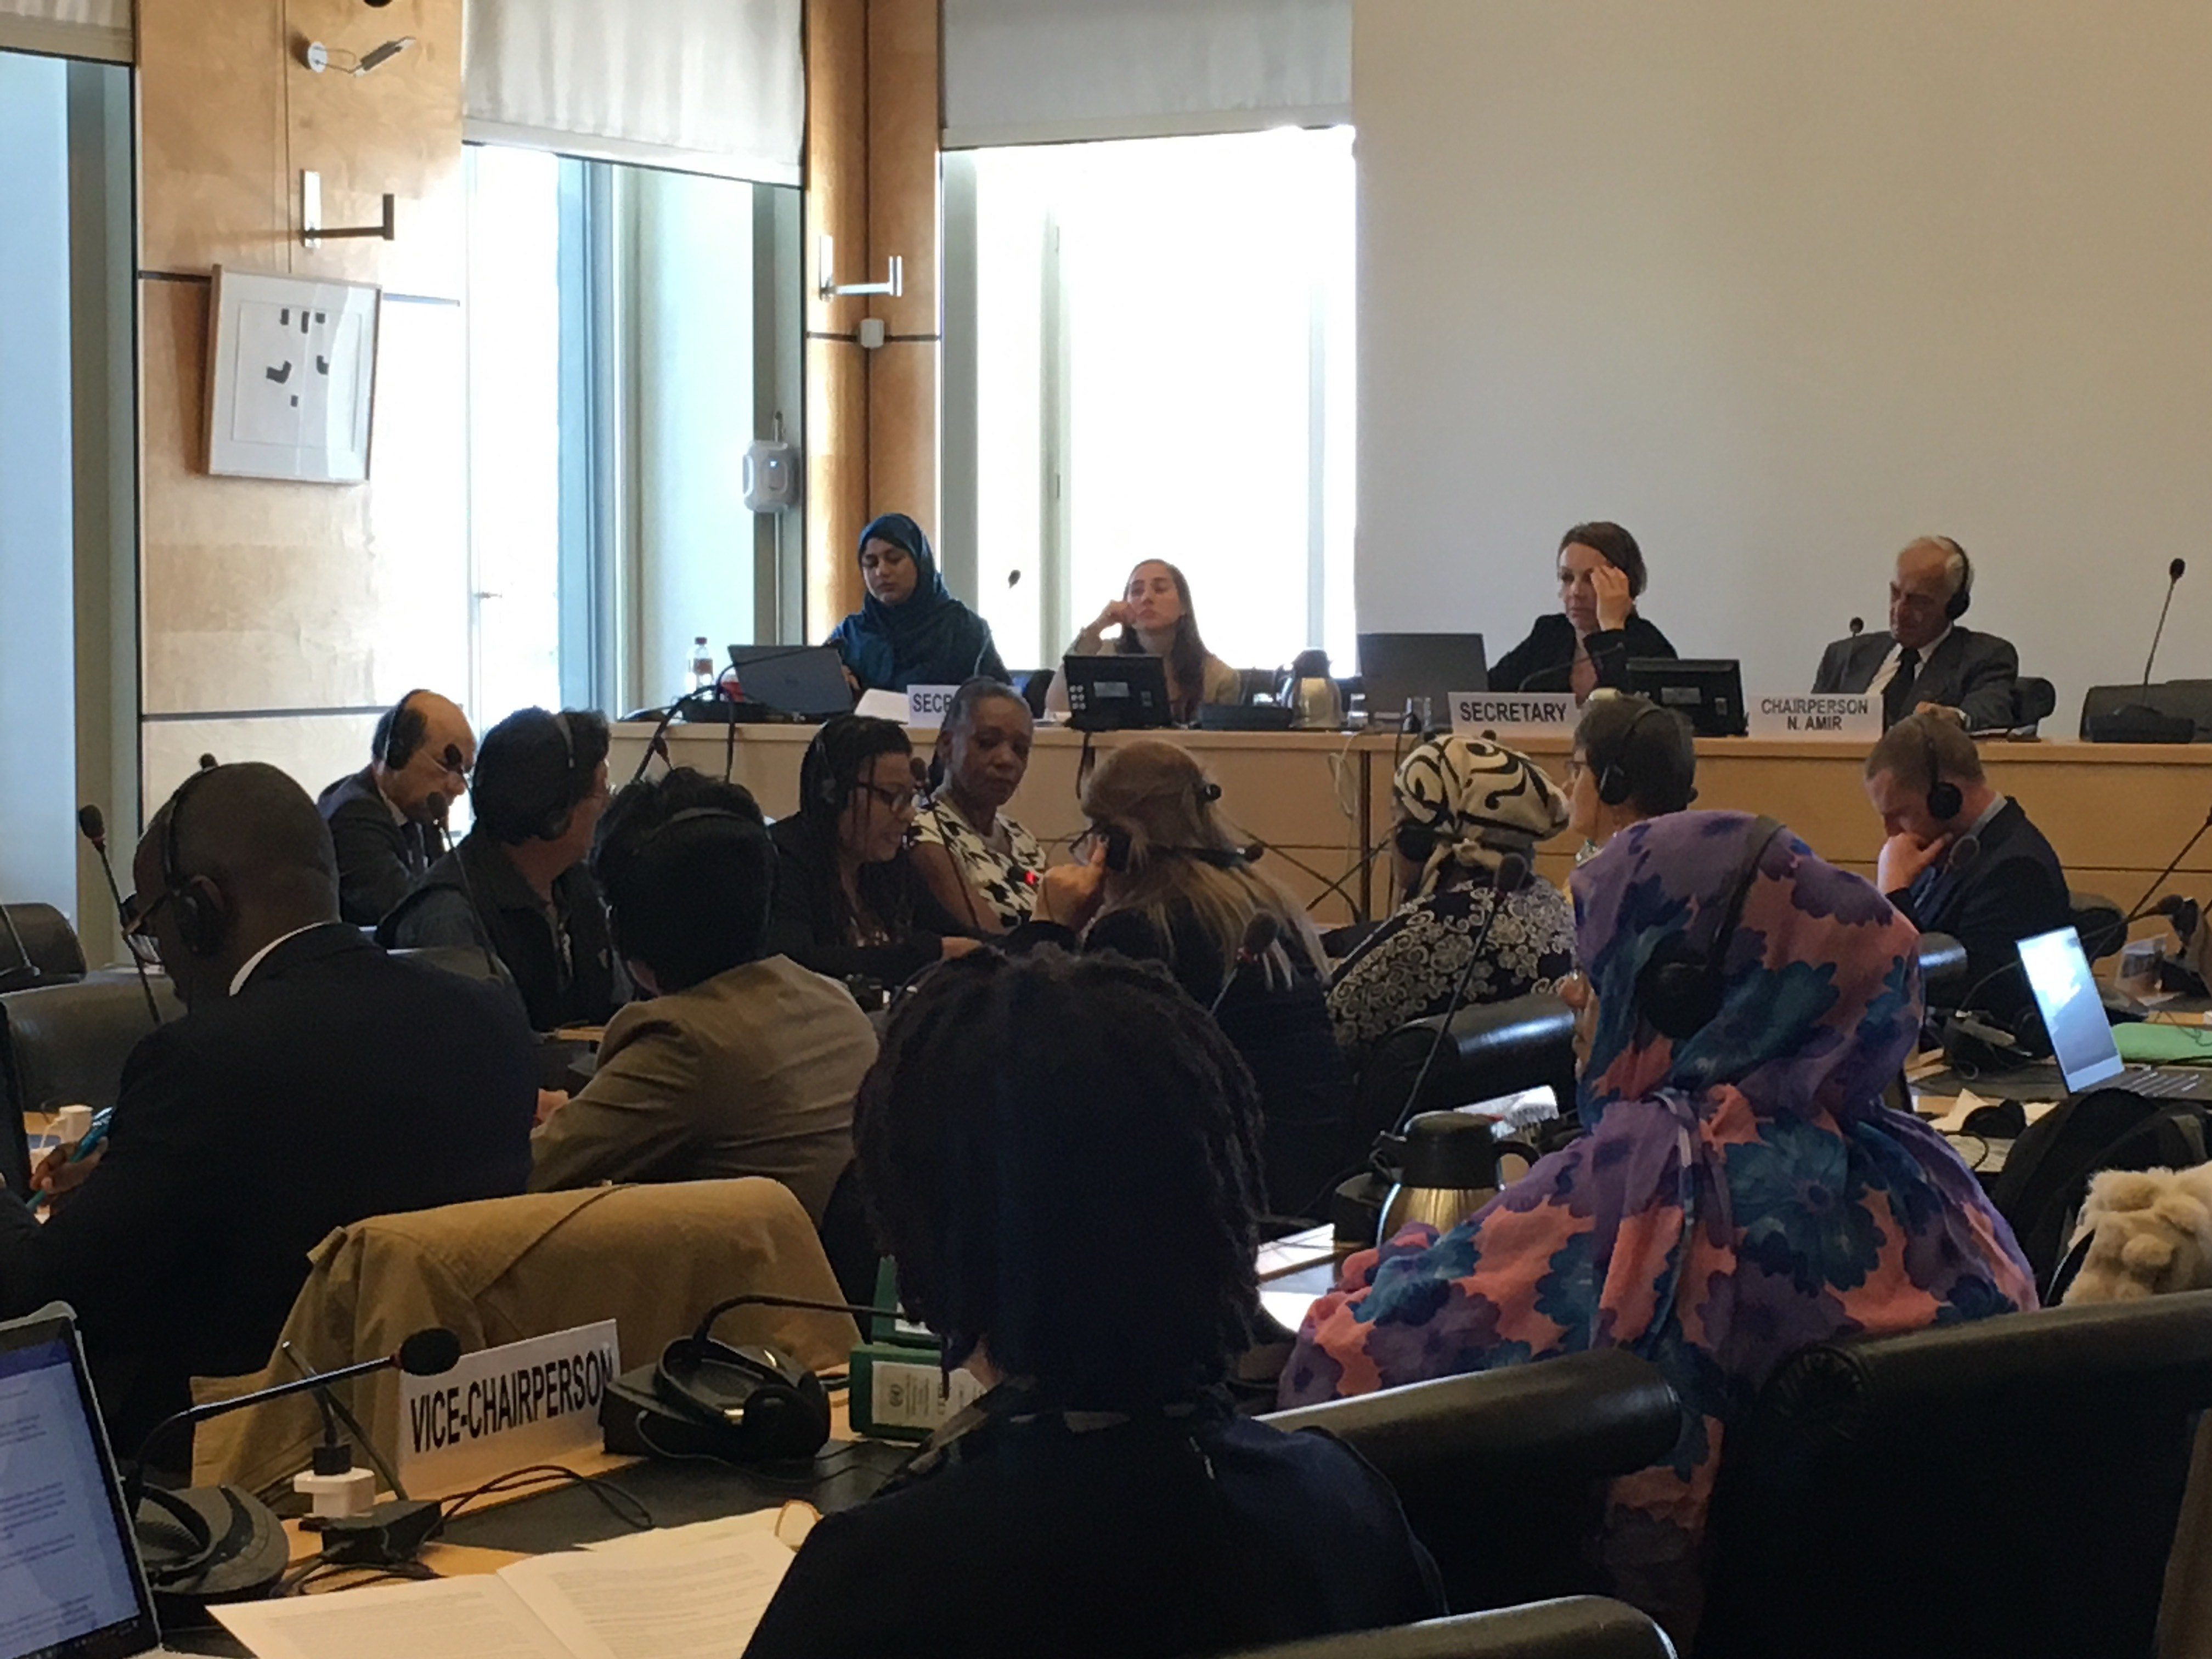 VIDEO: Afro-Peruvian women present discrimination cases before the Committee on the Elimination of Racial Discrimination (CERD)